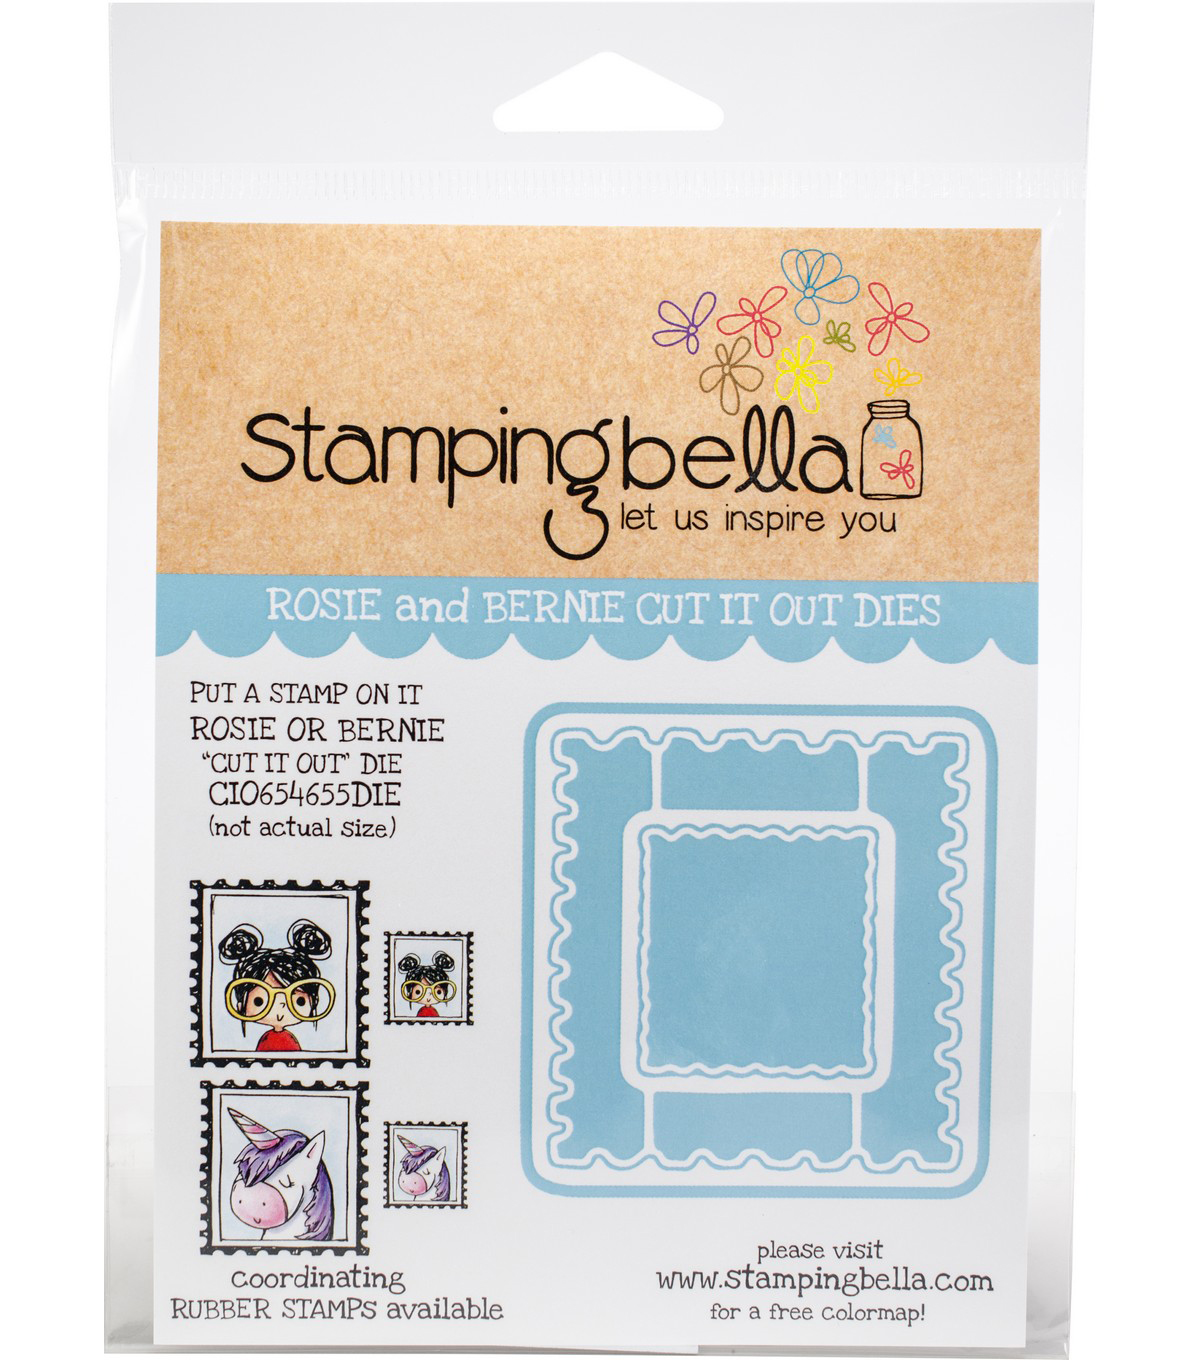 Stamping Bella Cut It Out S Put A Stamp On Rosie Bernie